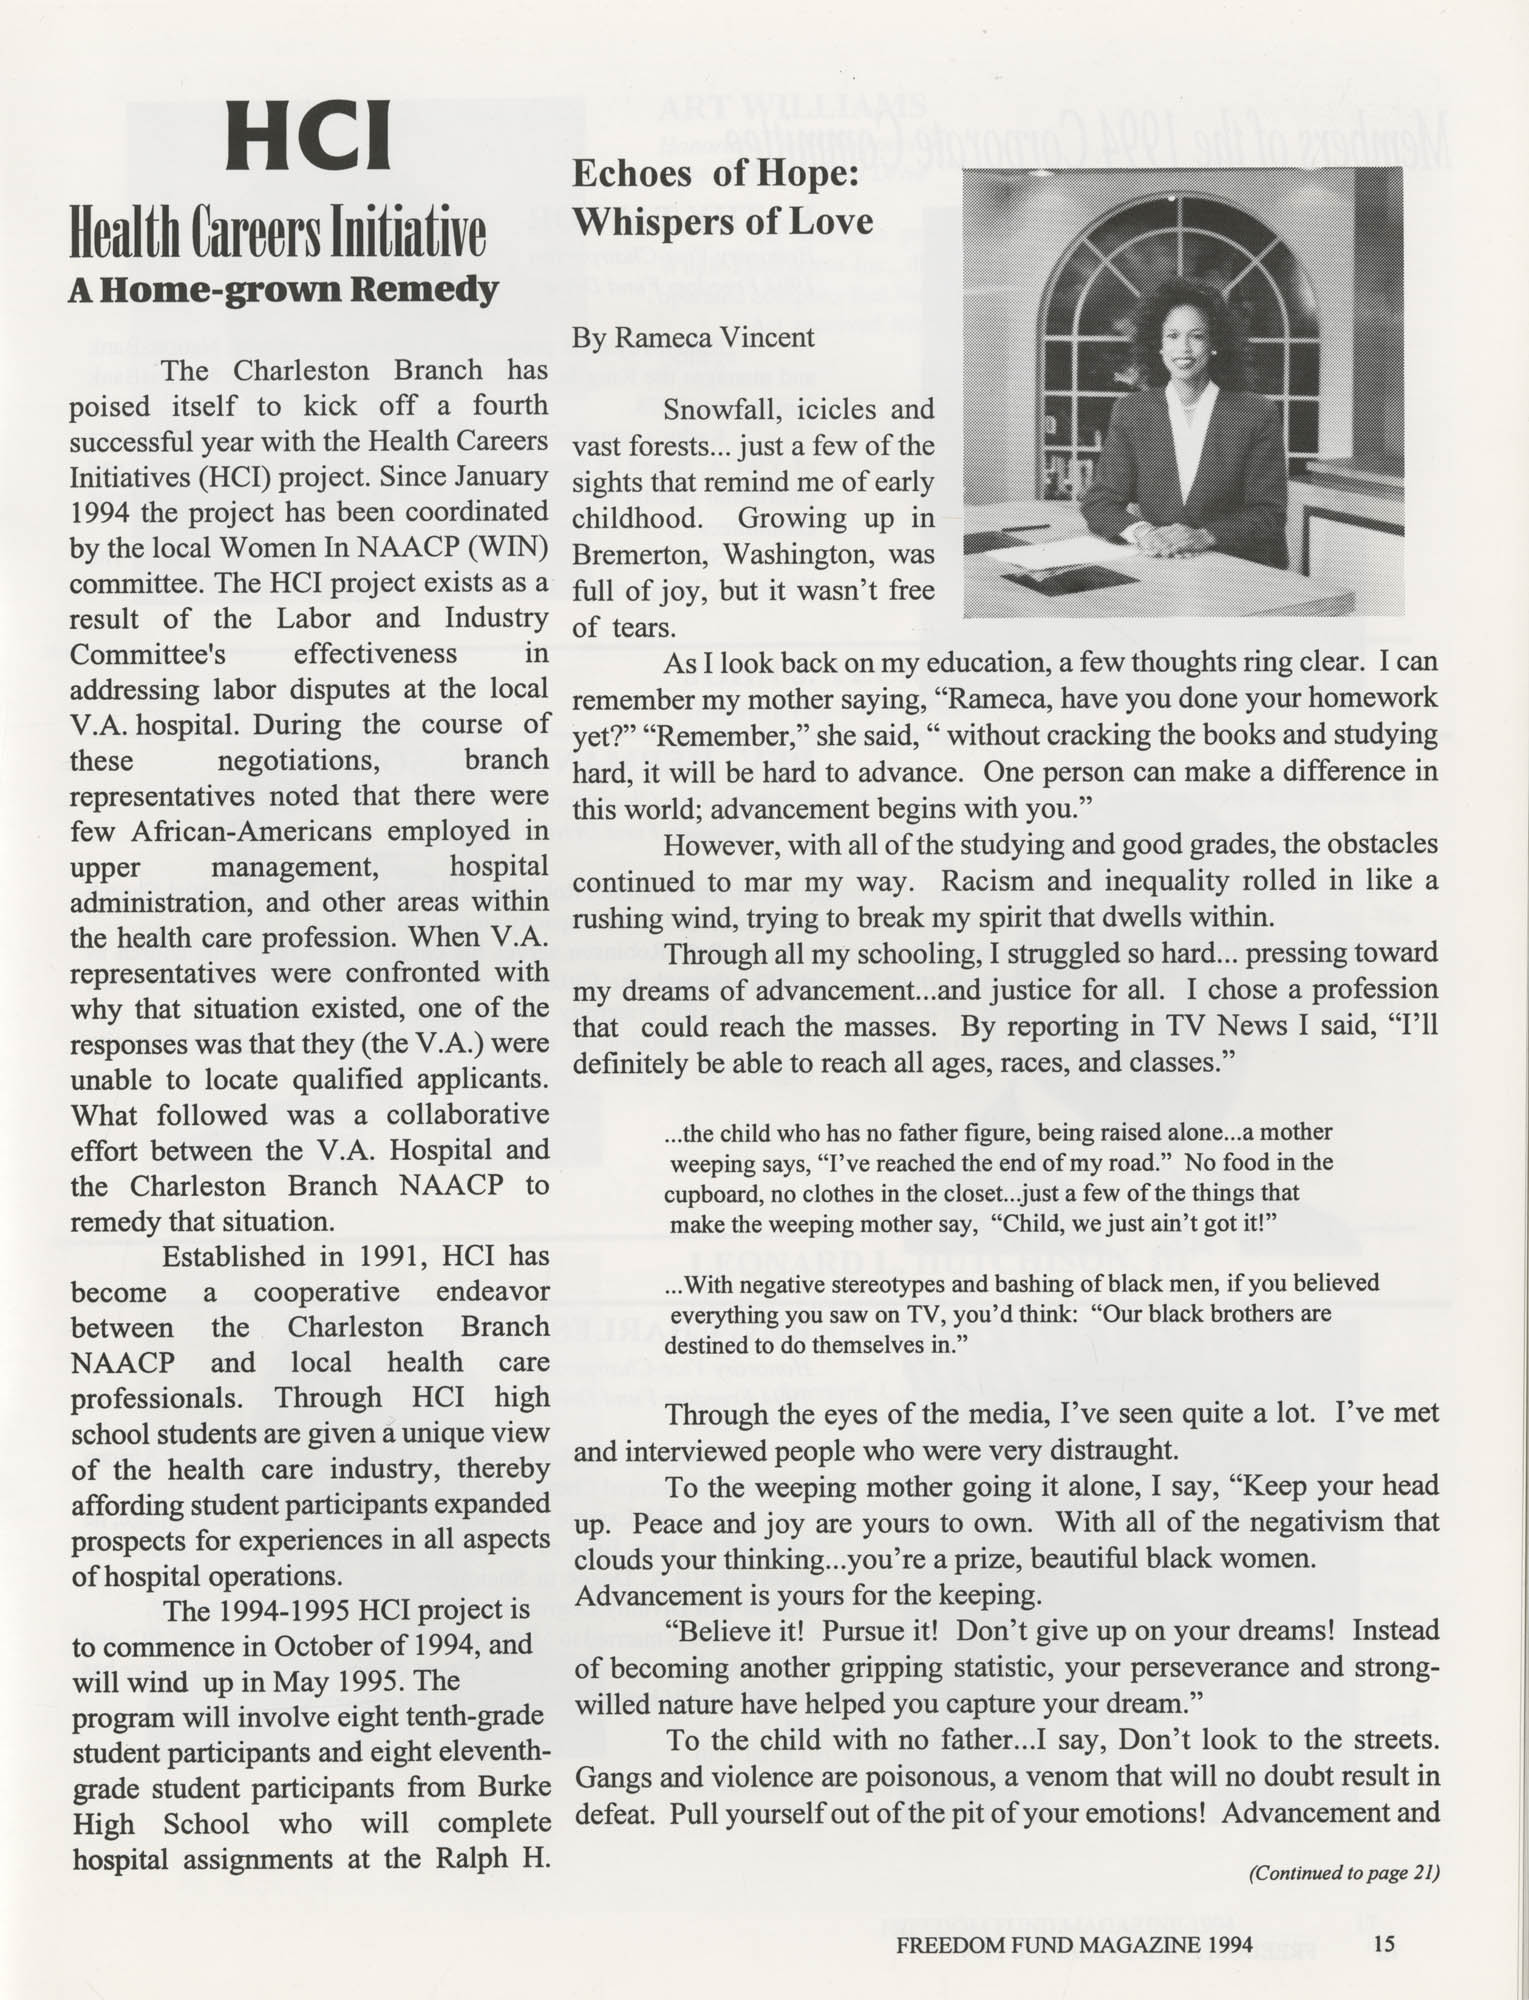 Freedom Fund Magazine, 1994, Page 15